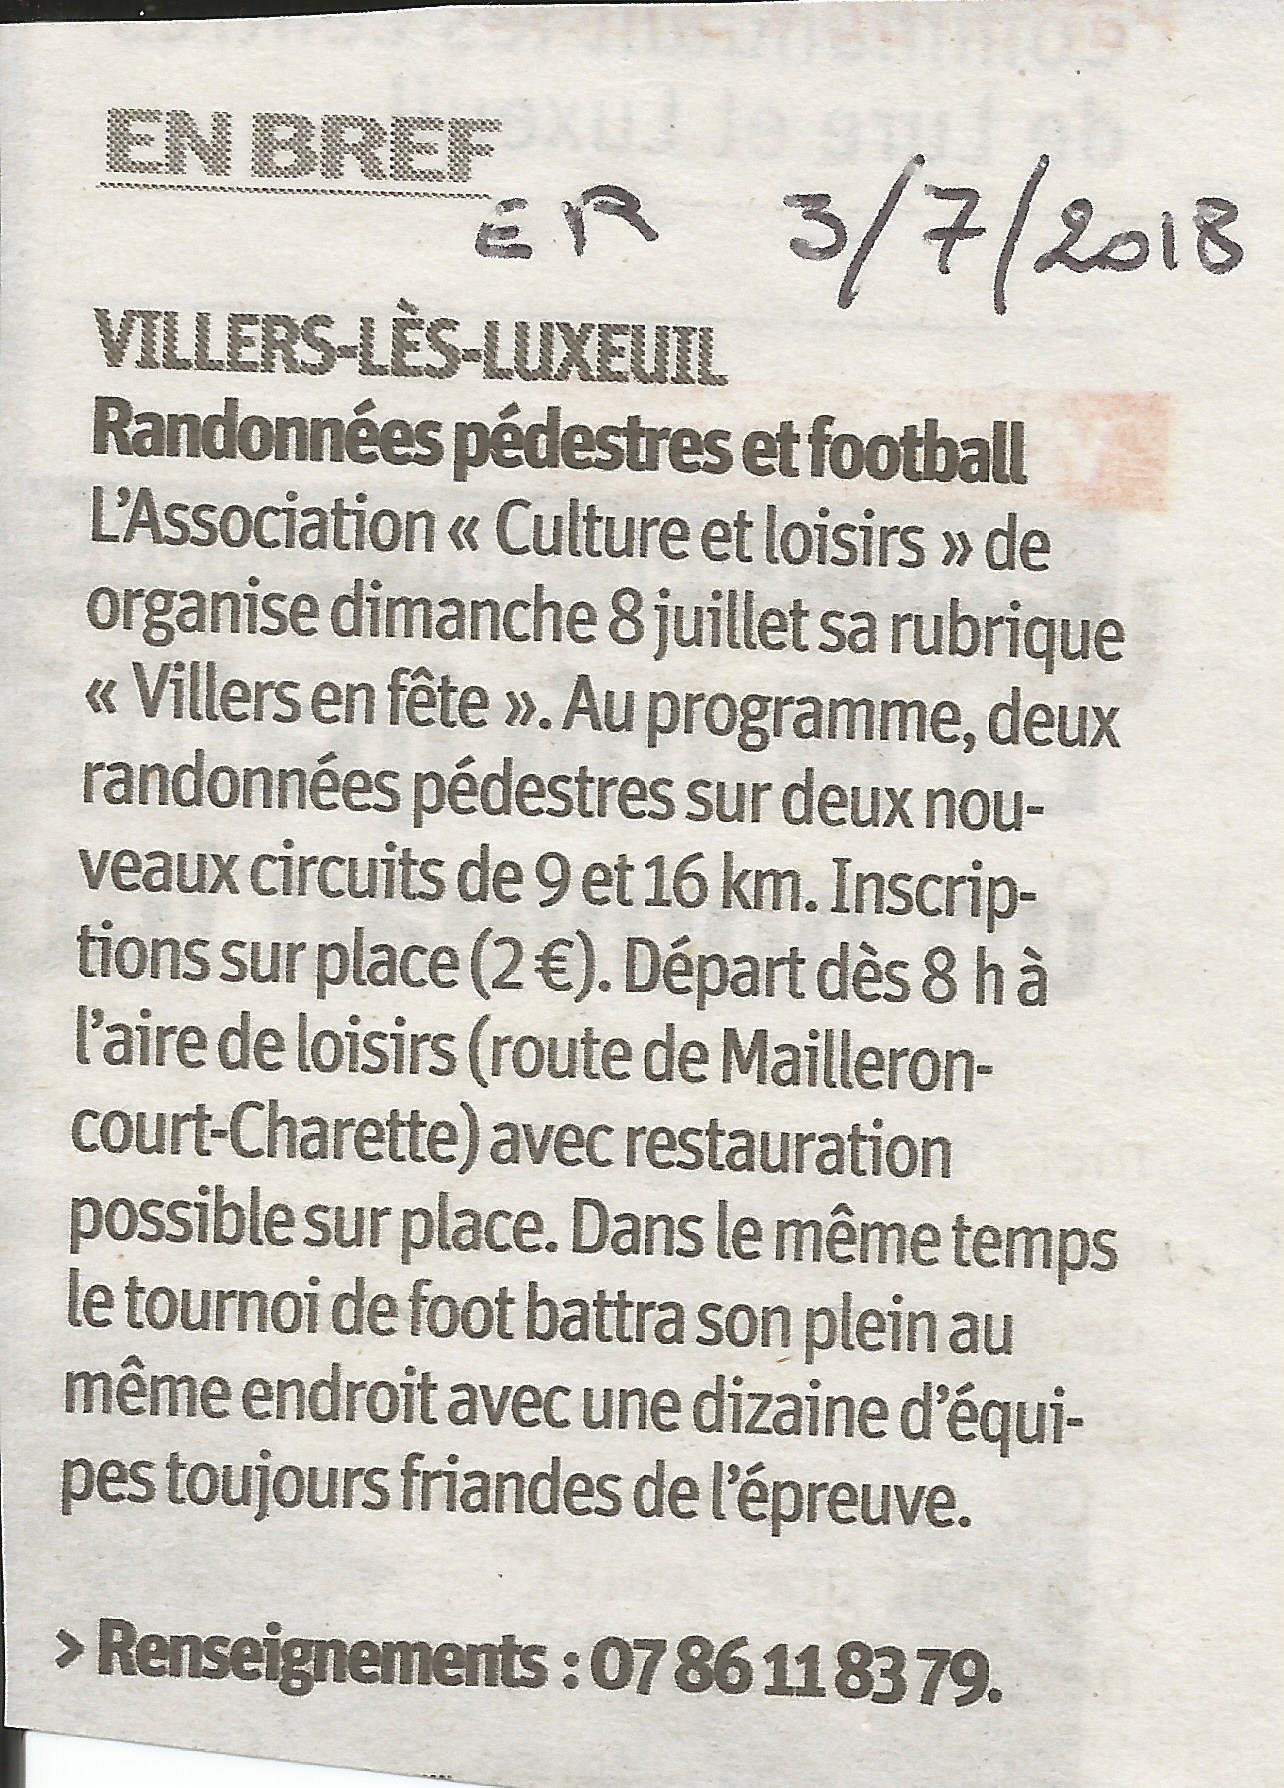 https://www.villers-les-luxeuil.com/projets/villers/files/images/2018_Mairie/Presse/2018_07_03.jpg